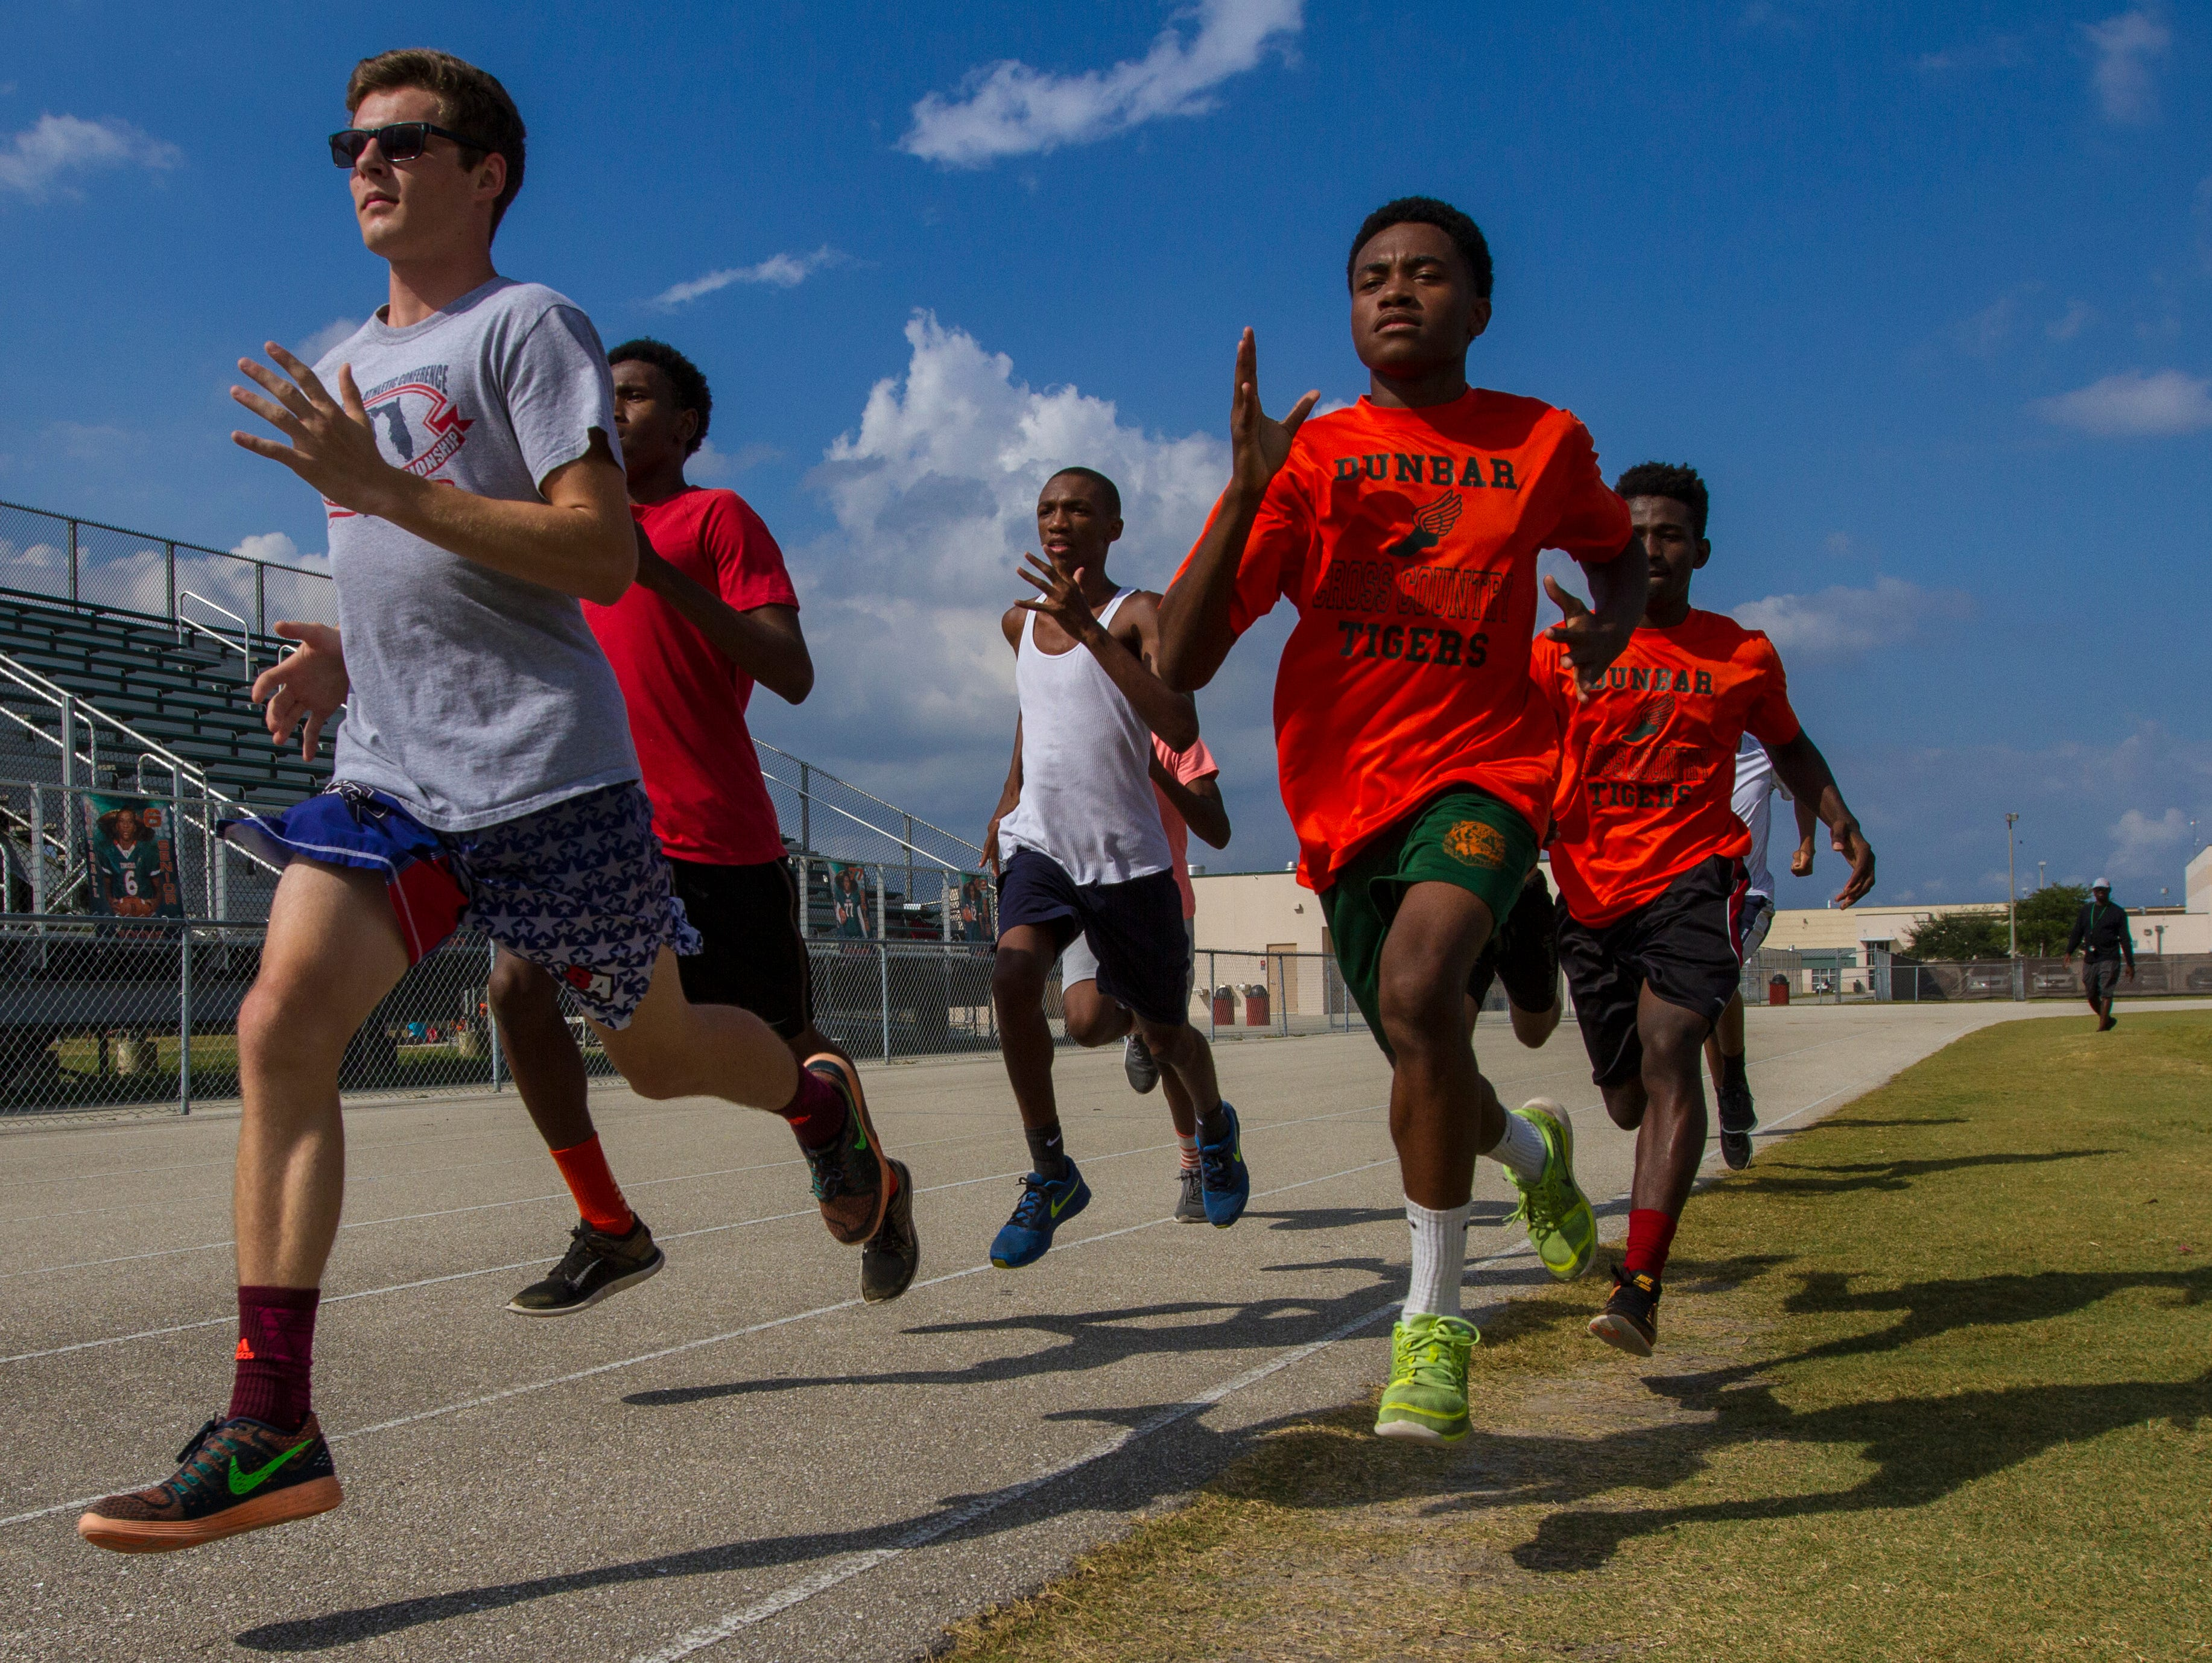 Members of the Dunbar High School cross country team practice after school Wednesday, November 2, at their track in Fort Myers. The team has qualified for its first state championship in school history.